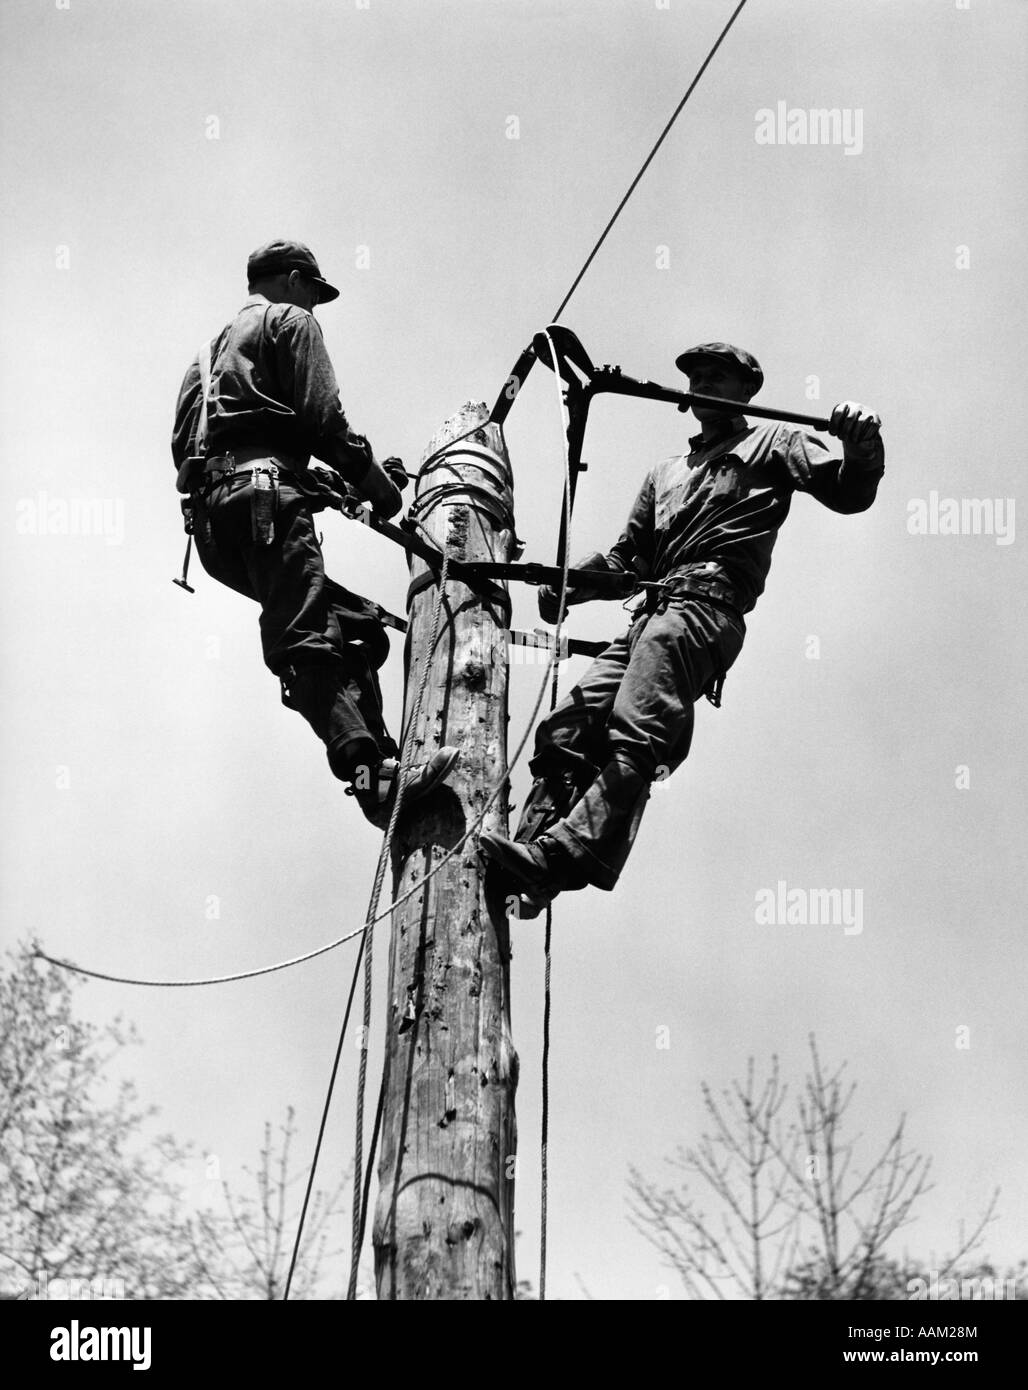 1930s 1940s Two Men Working On Electrical Power Pole Cutting Wire View